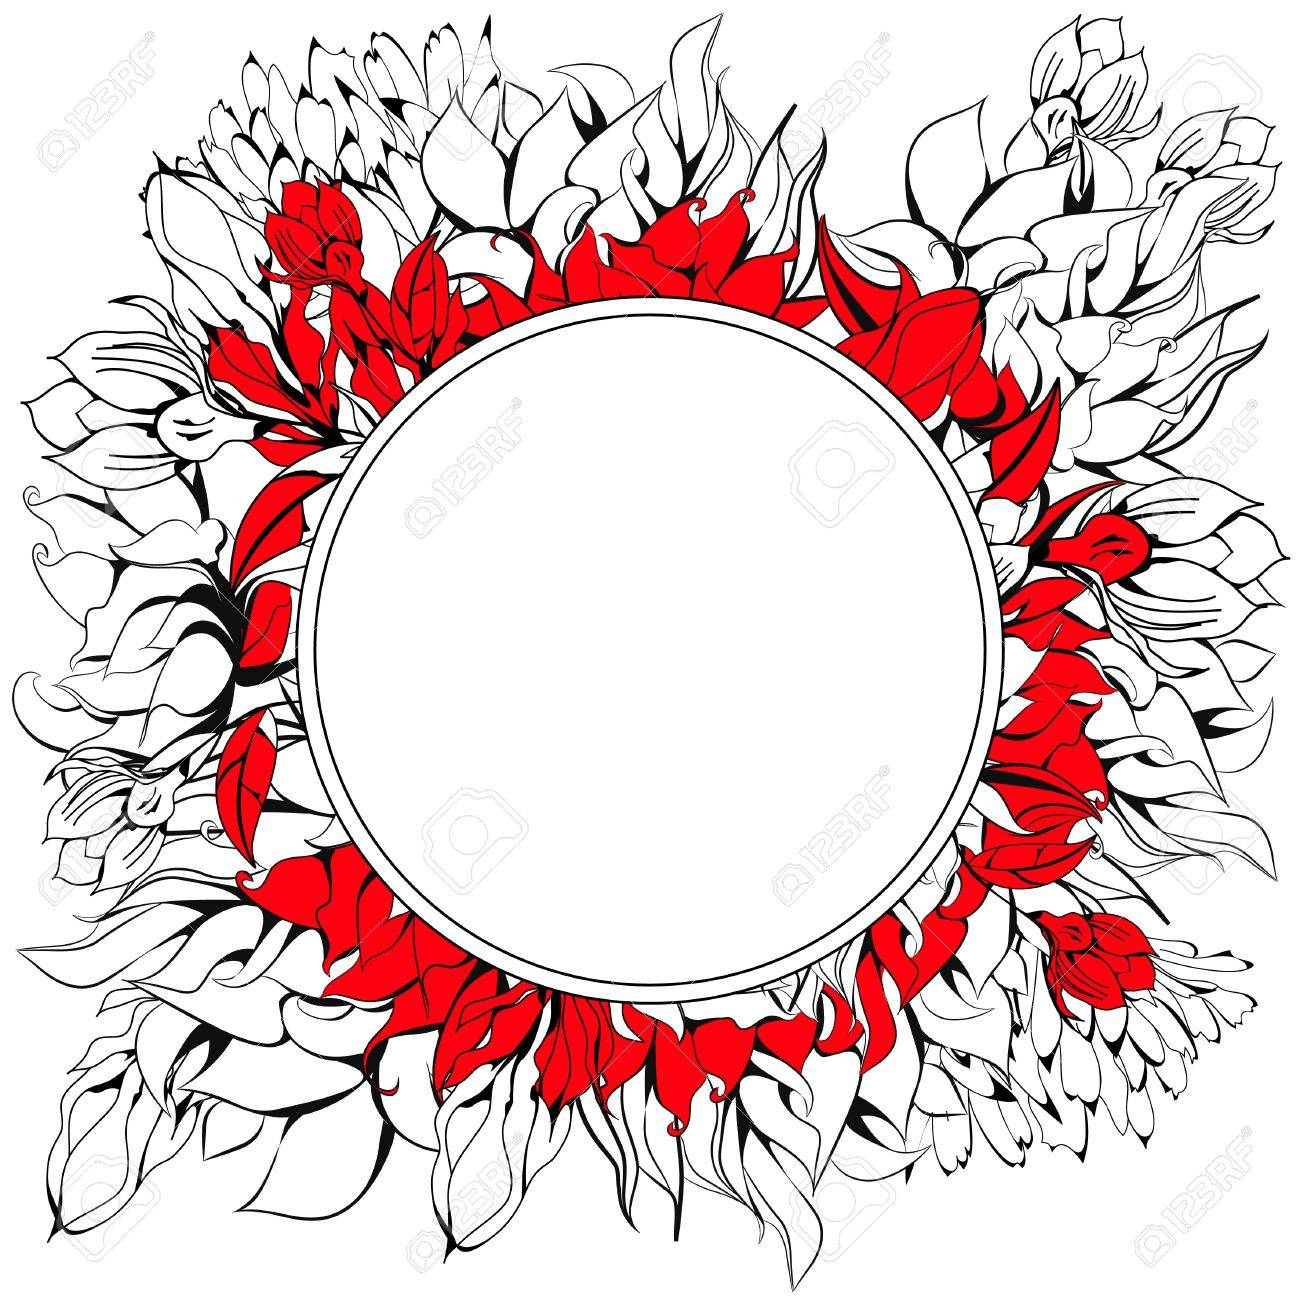 Round frame with floral element Stock Vector - 8874608